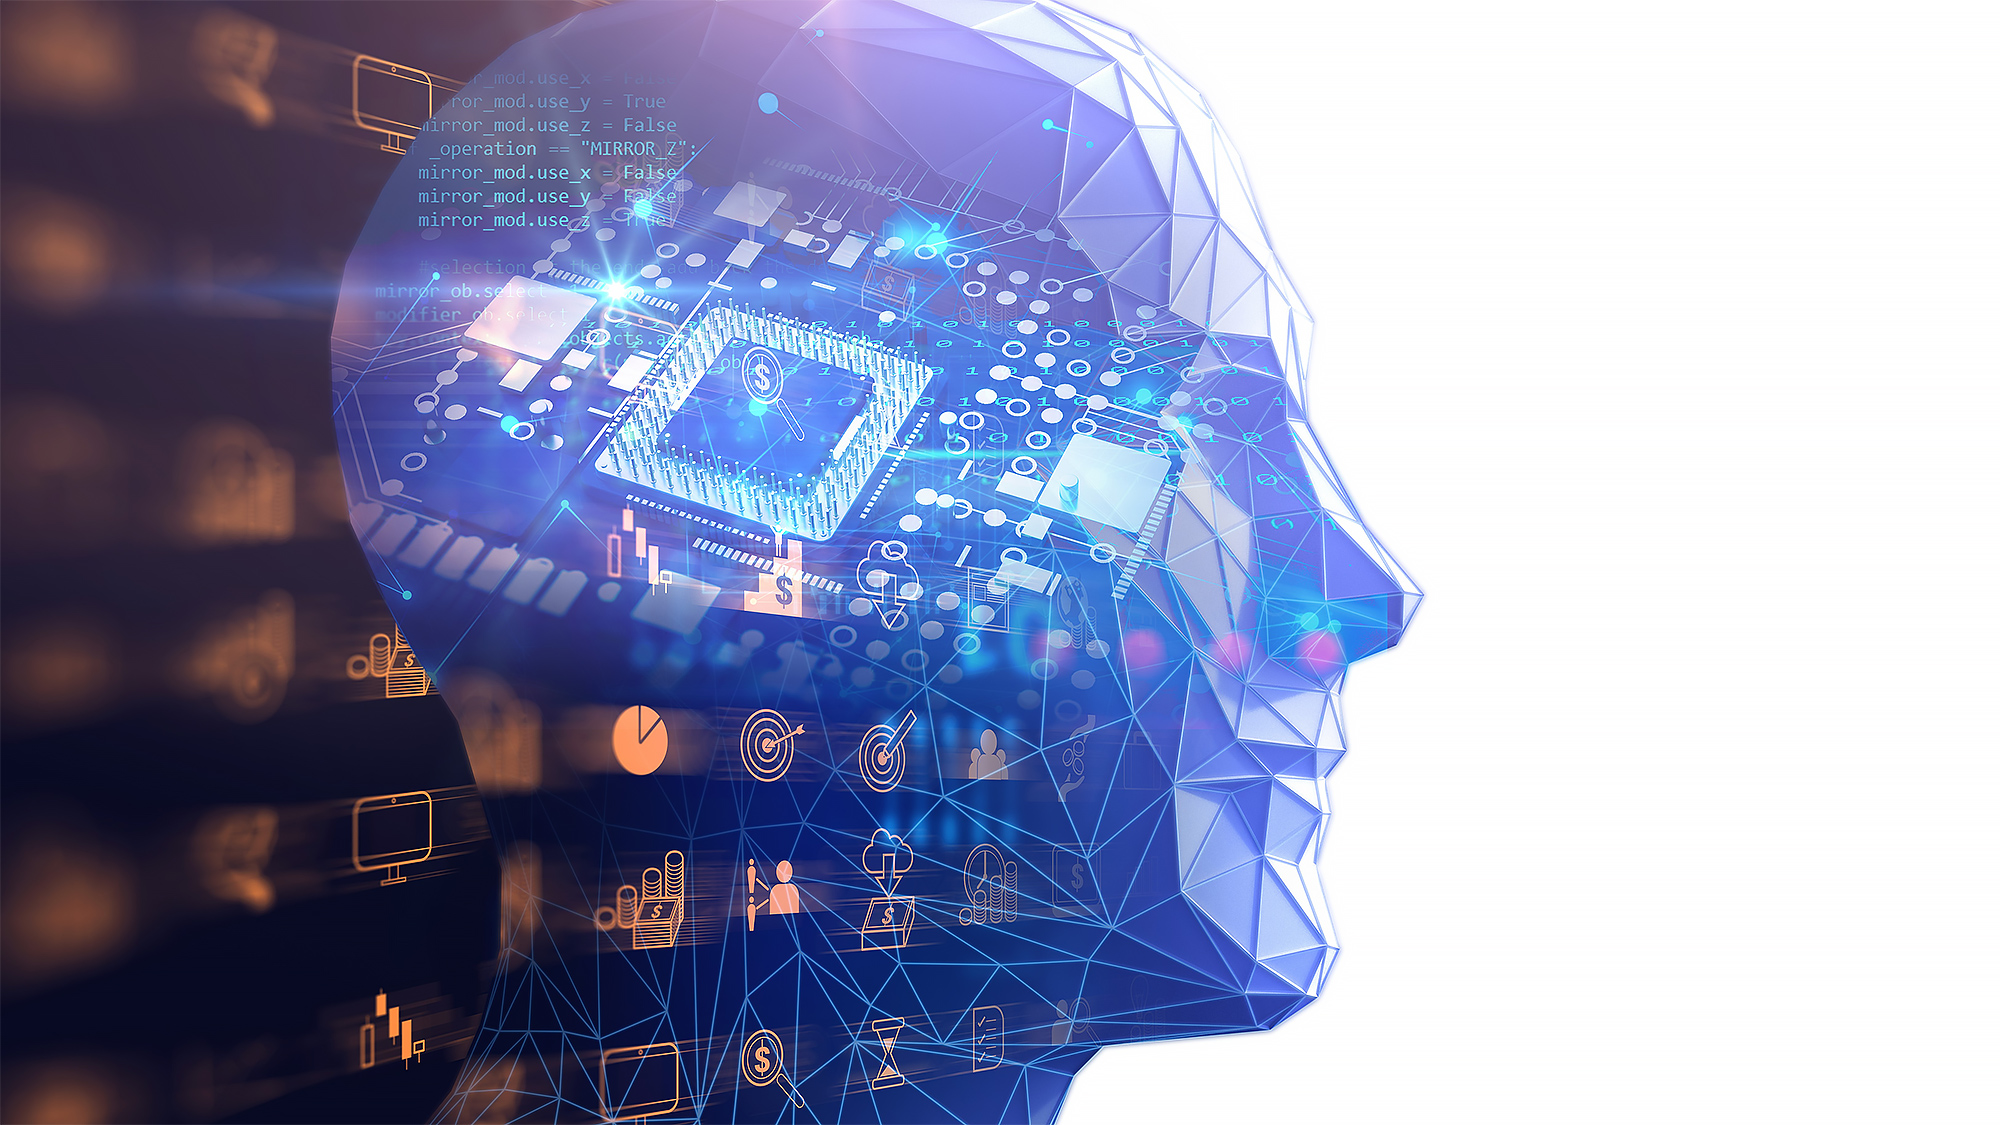 EDA pursues work on Artificial Intelligence in defence